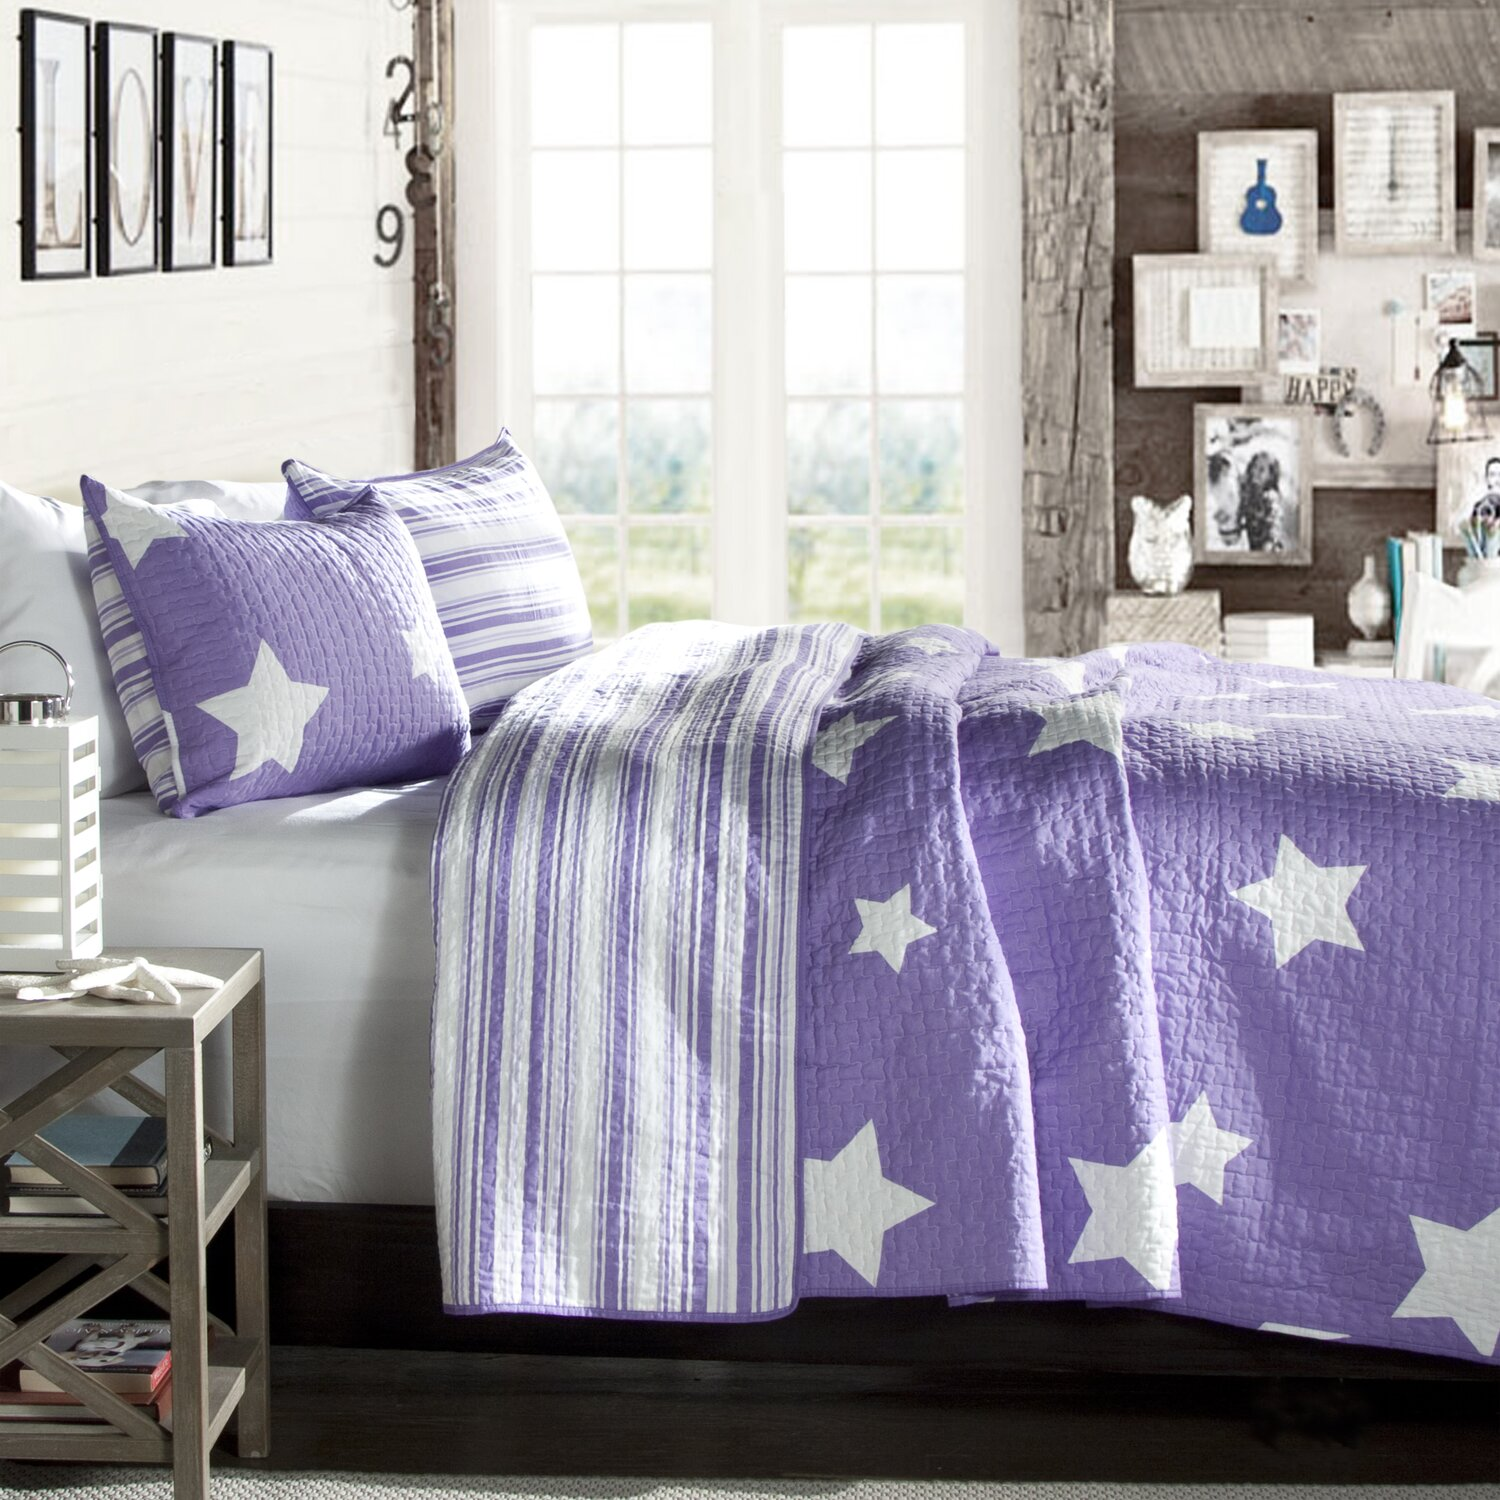 bed day and white curtain comfortable covers daybed of bedding color match purple ideas with